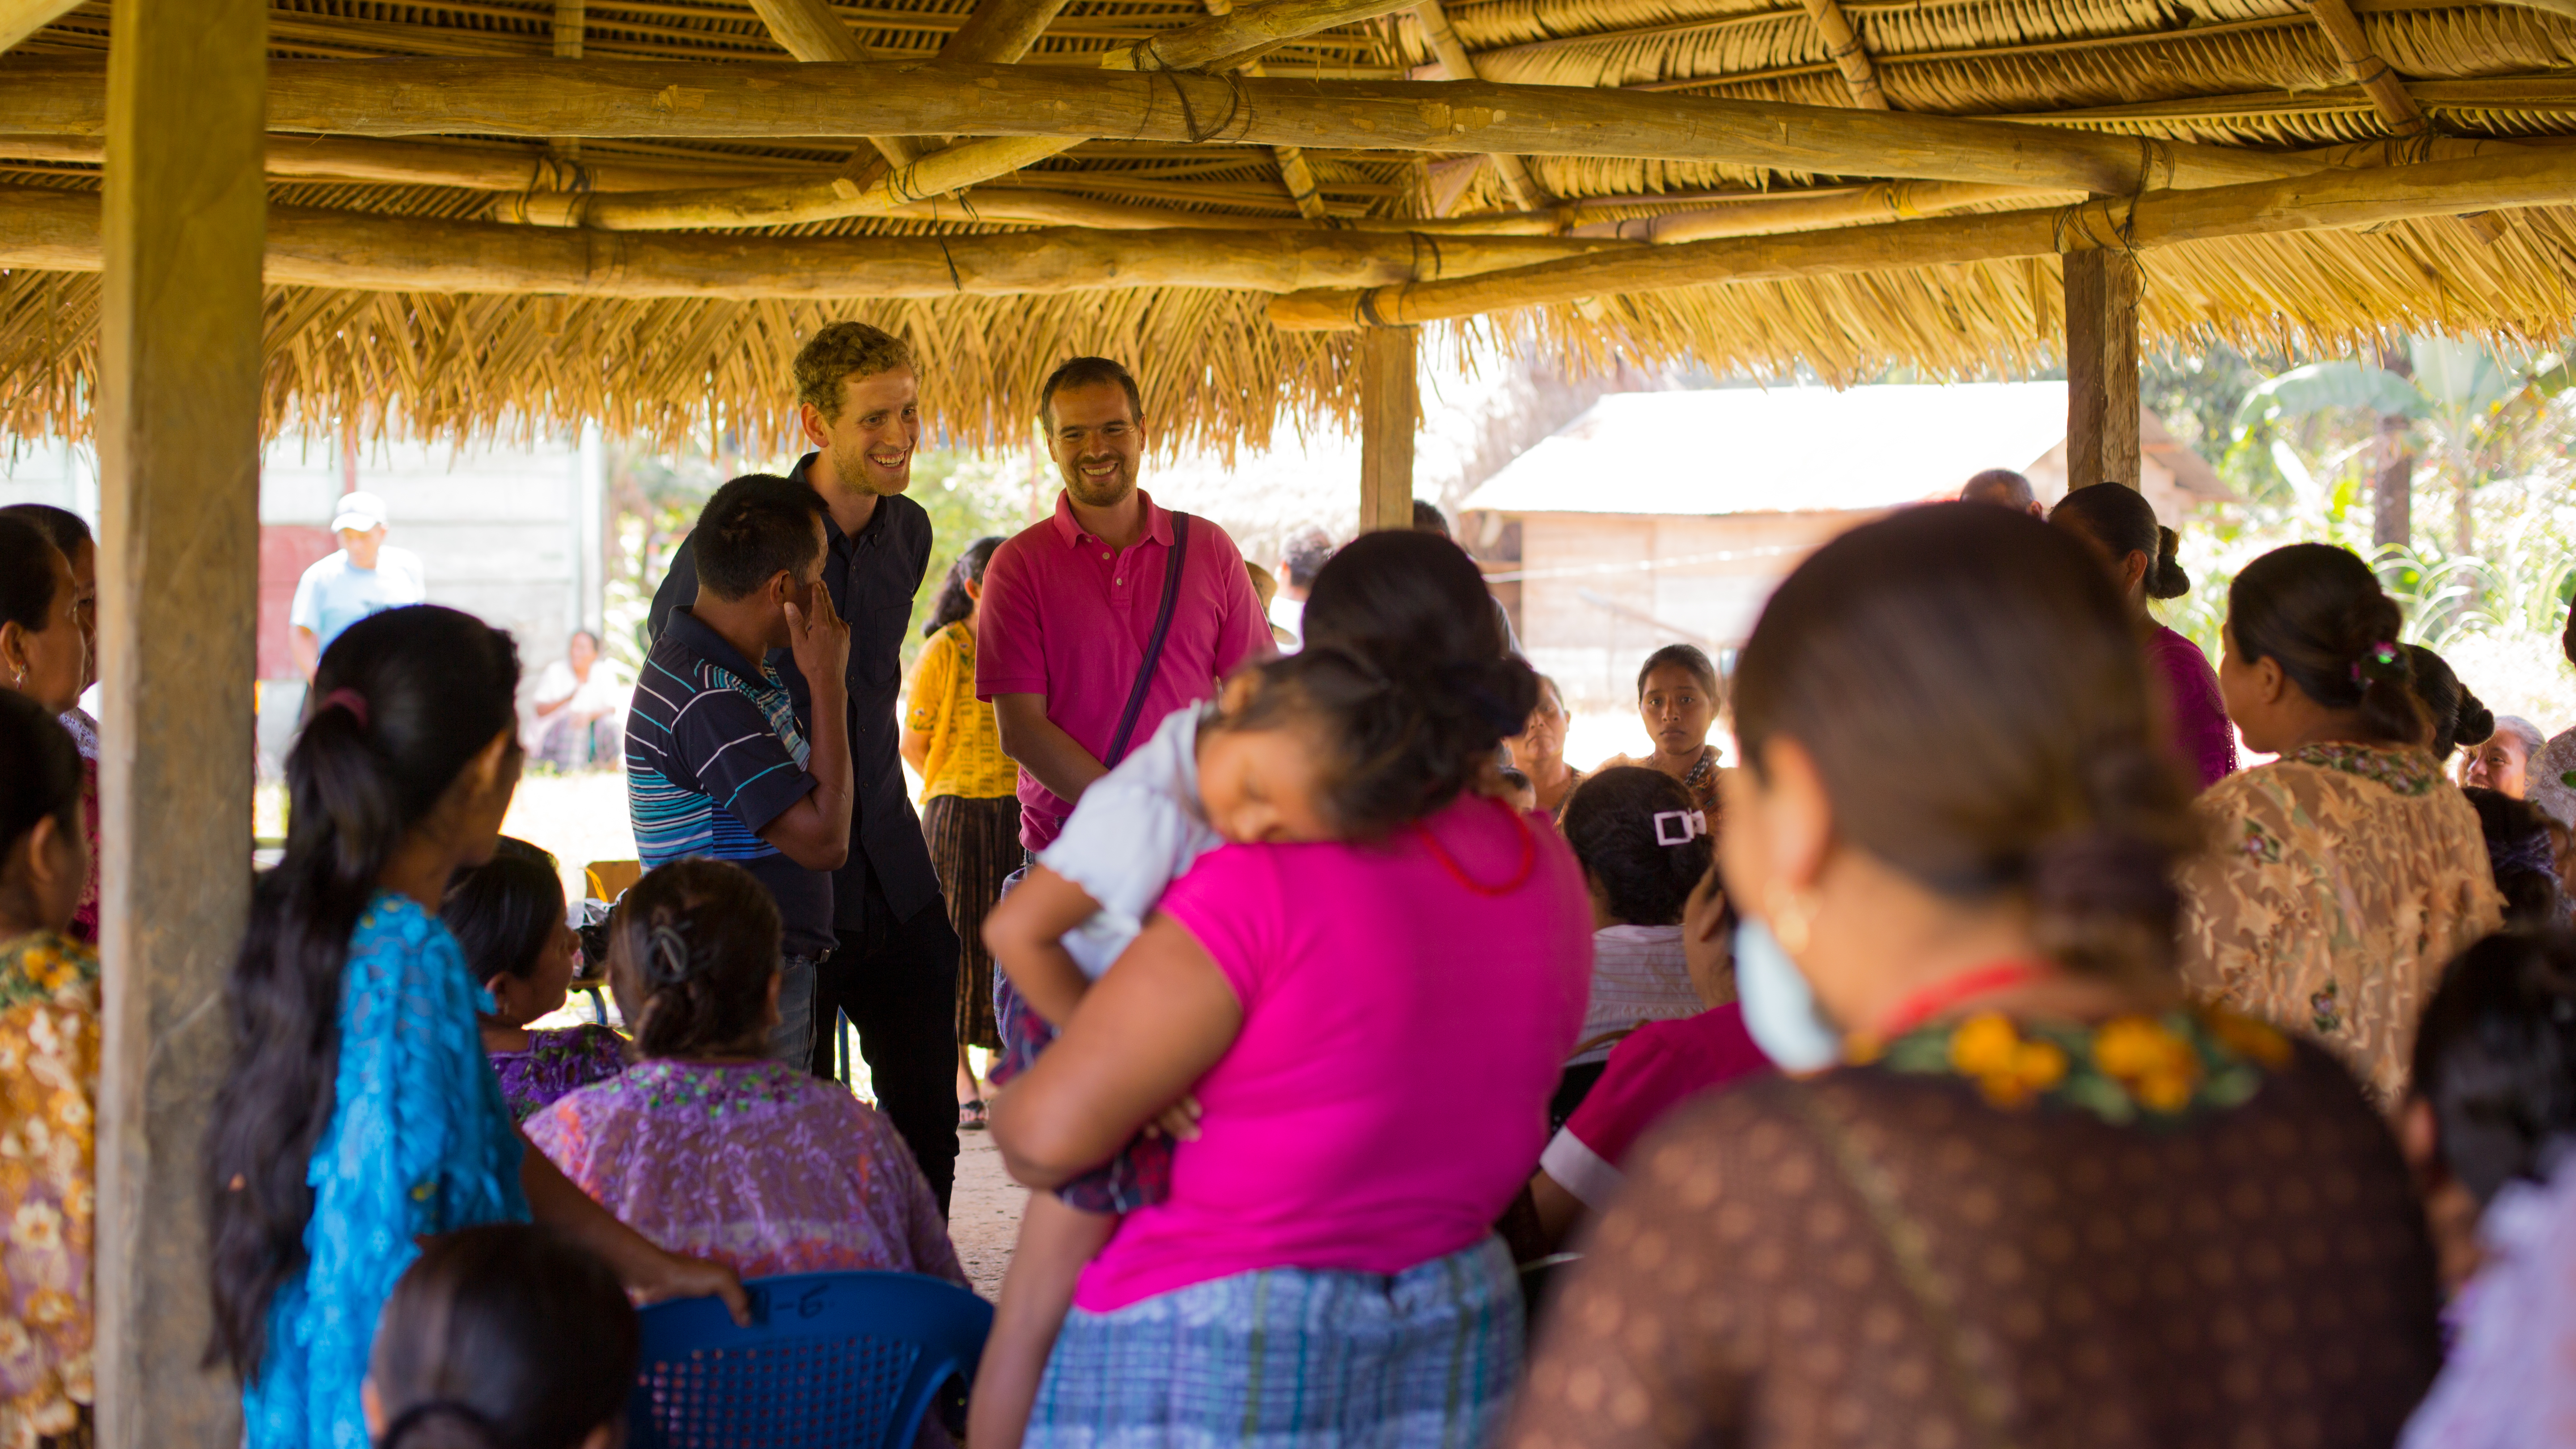 """Michael Dorgan meeting with a Mayan community in Guatemala while making his film, """"Appetite for Destruction."""" (Courtesy of Michael Dorgan)"""